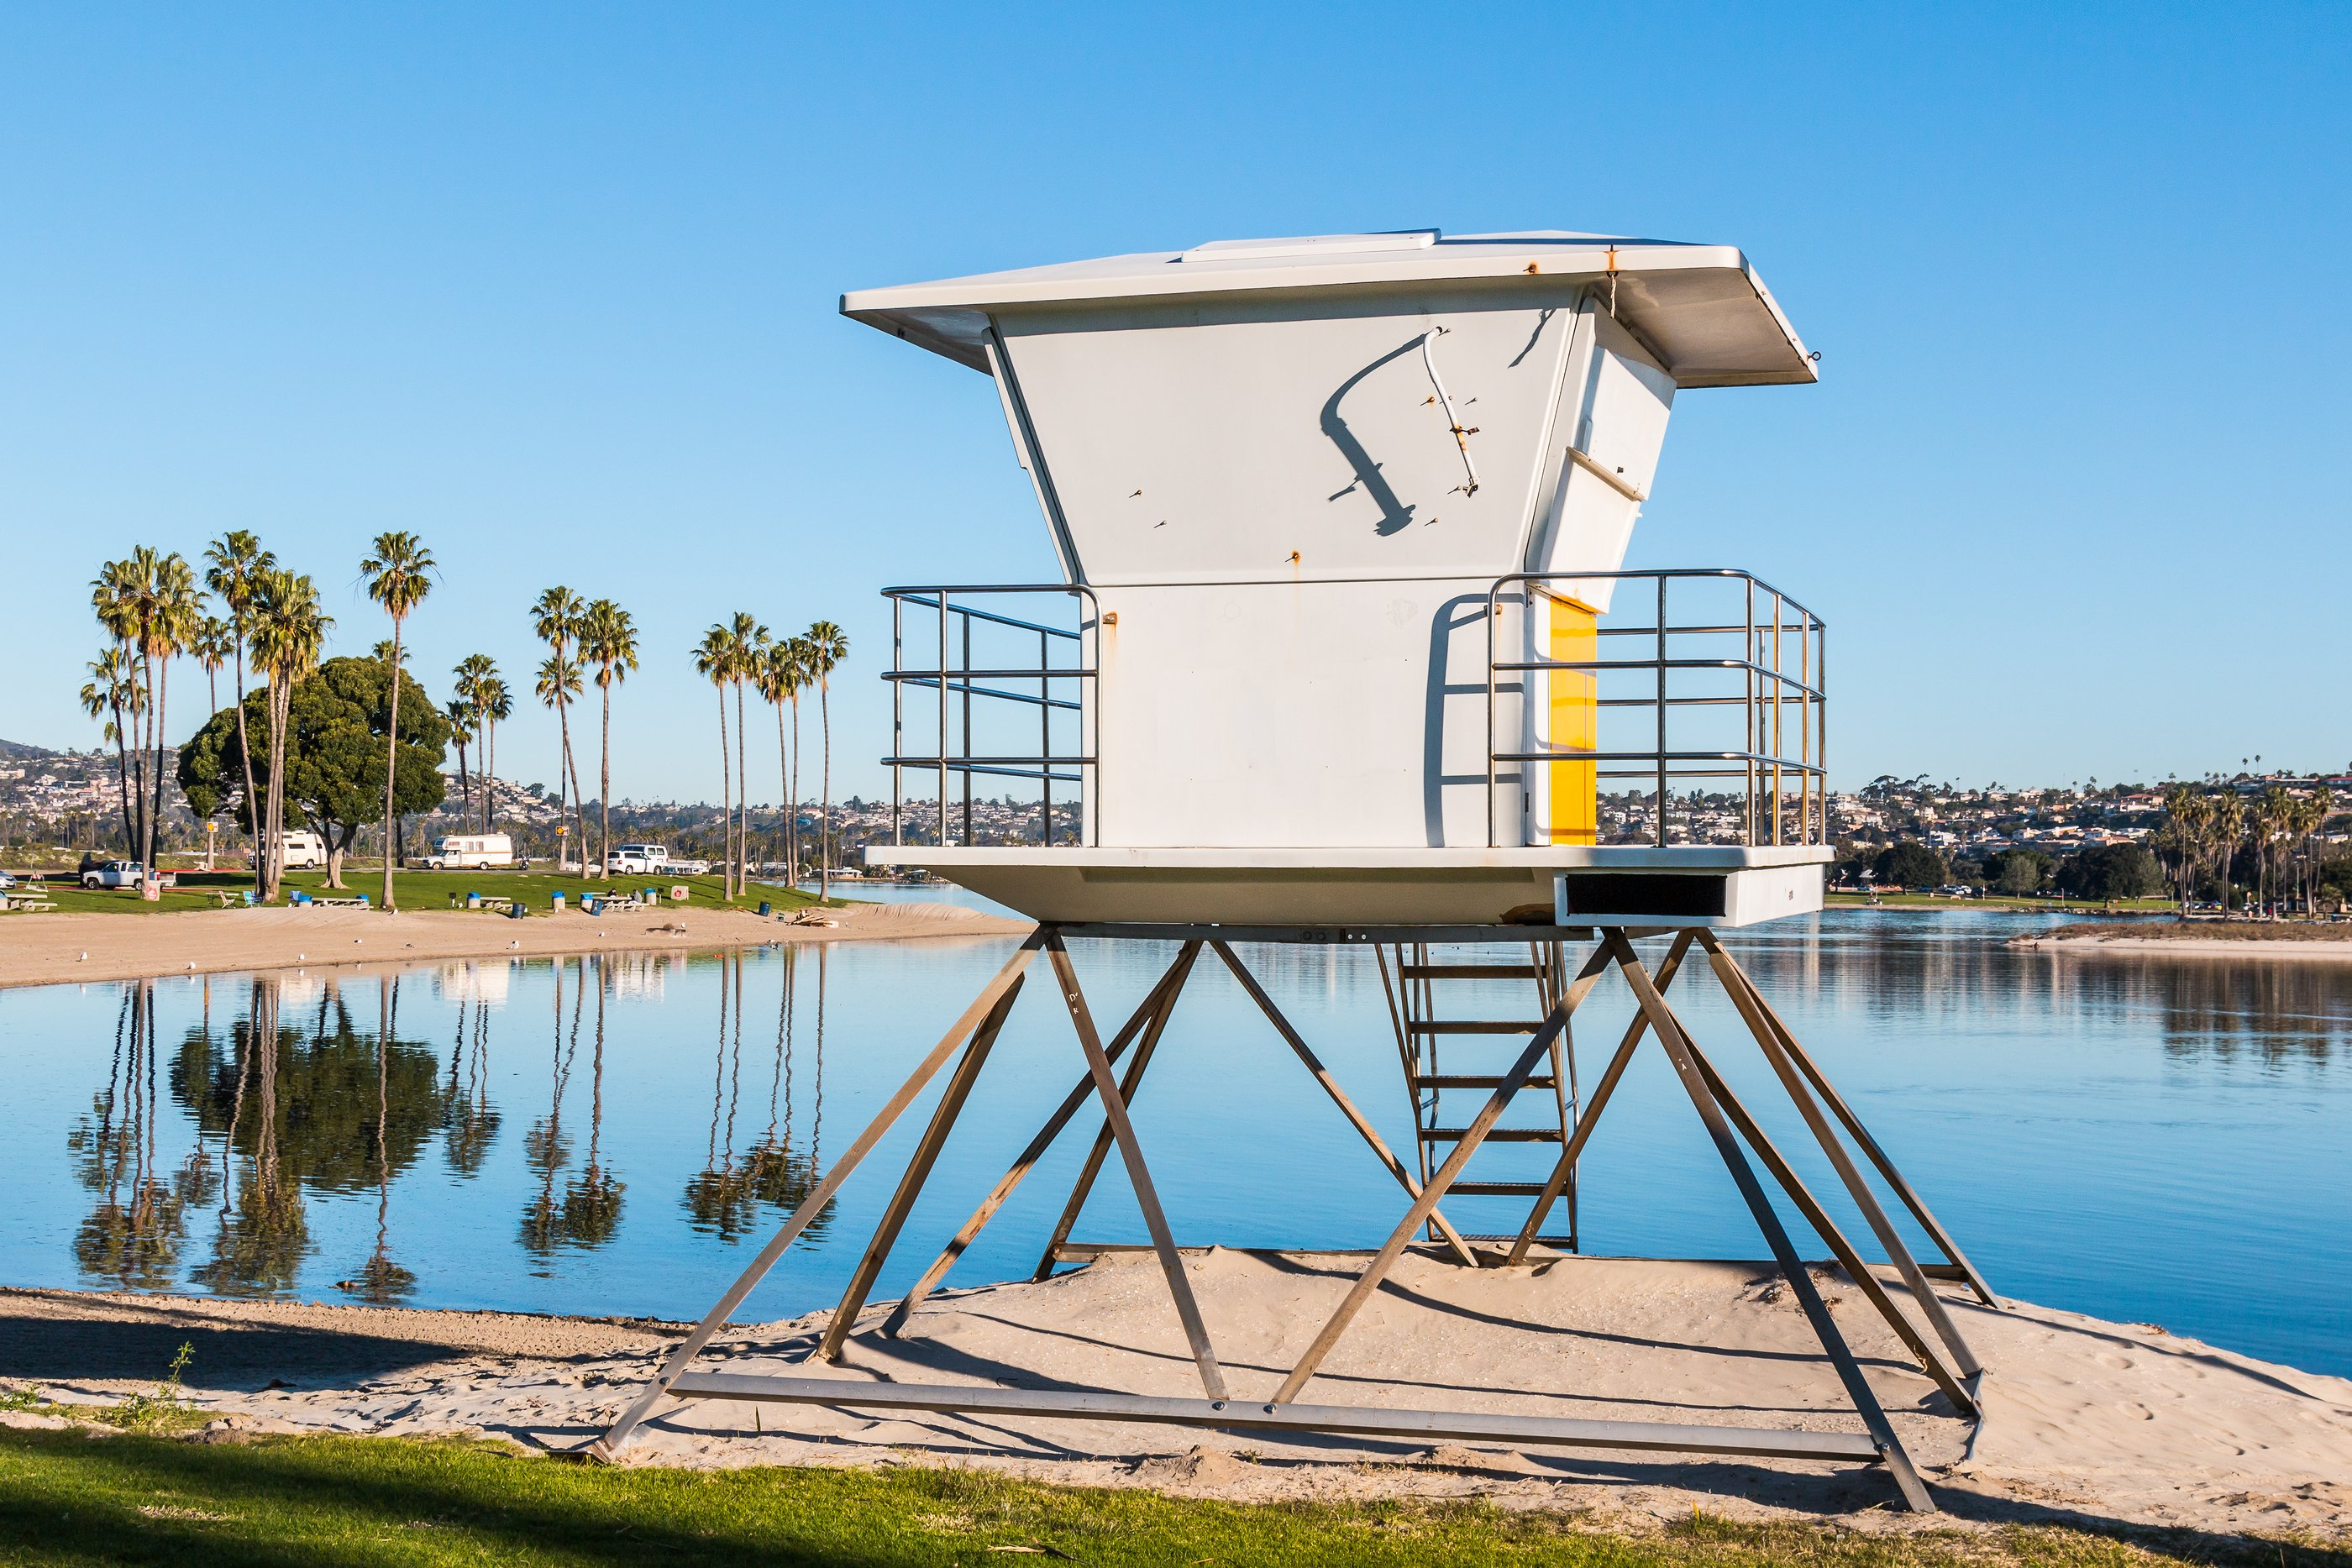 Mission Bay San Diego lifeguard tower